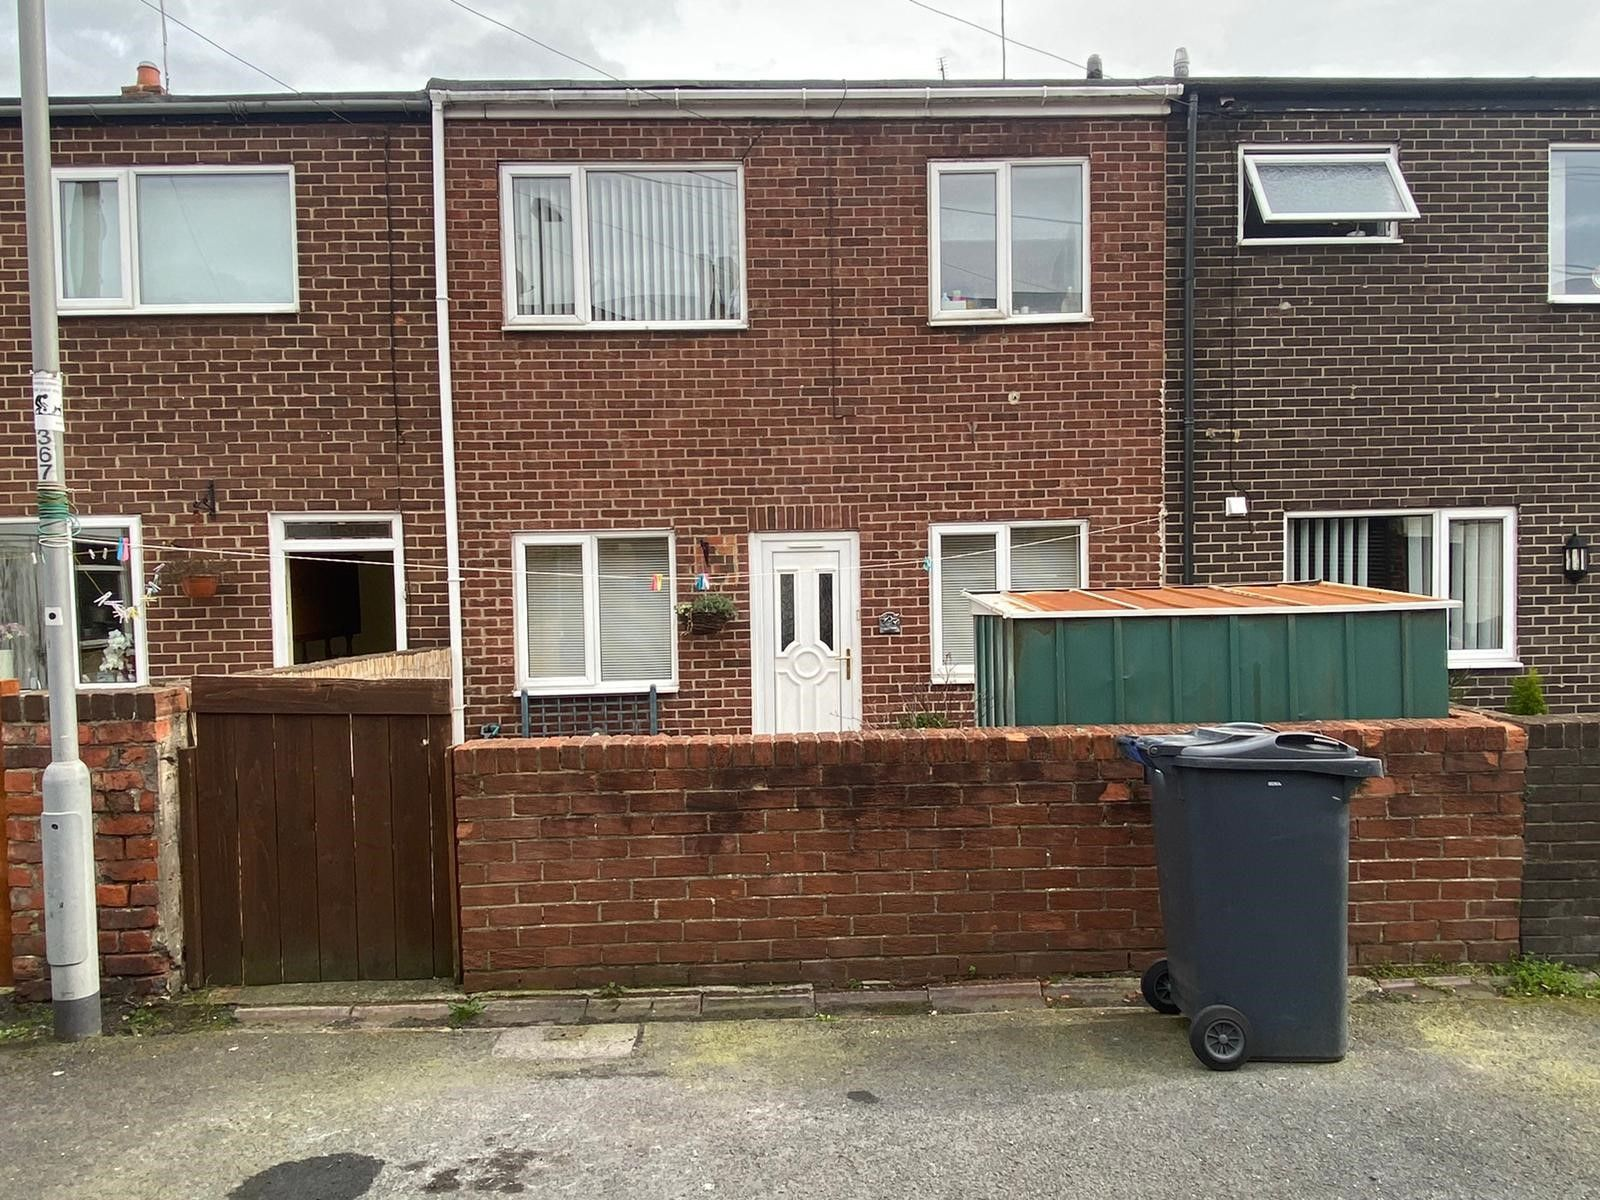 3 bedroom mid terraced house Let in Chester Le Street - Photograph 1.